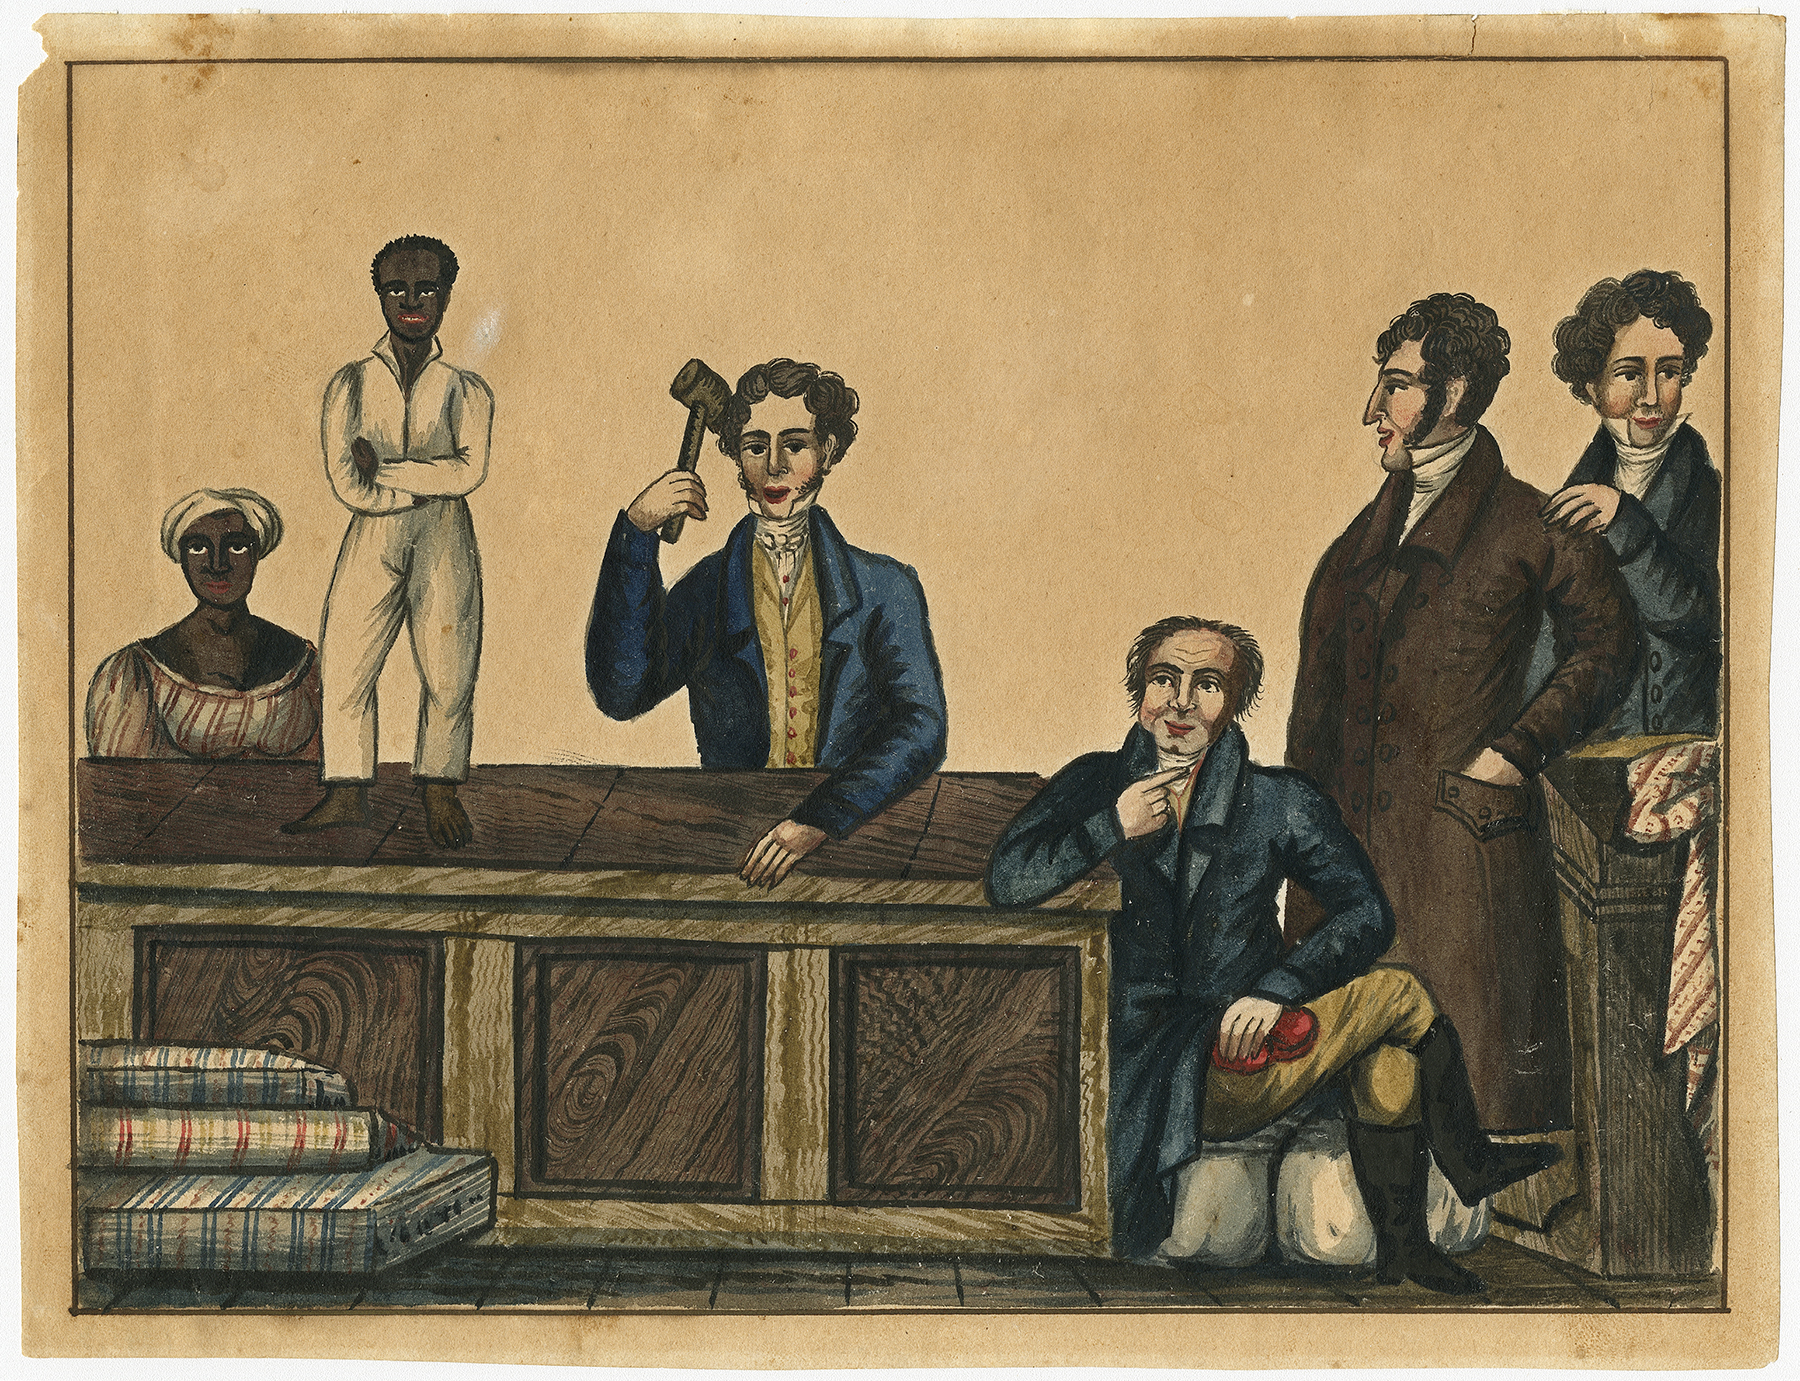 Slave Auction; ca. 1831; ink and watercolor; The Historic New Orleans Collection, 1941.3. Photograph courtesy of The Historic New Orleans Collection